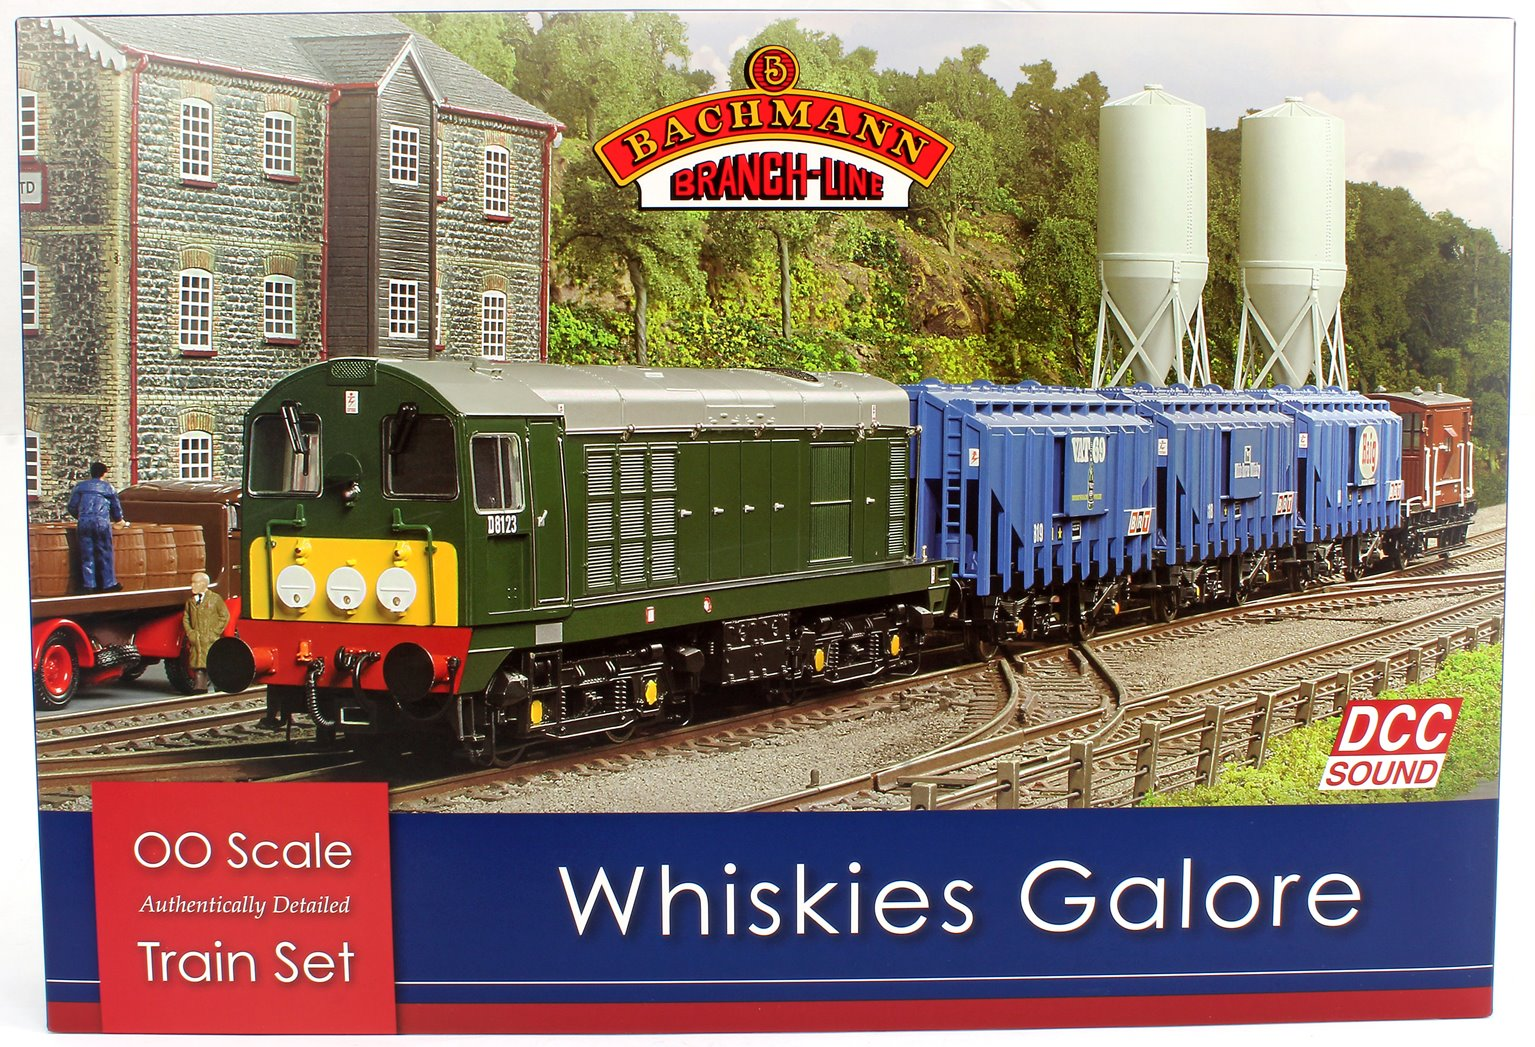 Whiskies Galore DCC Digital Sound Train Set